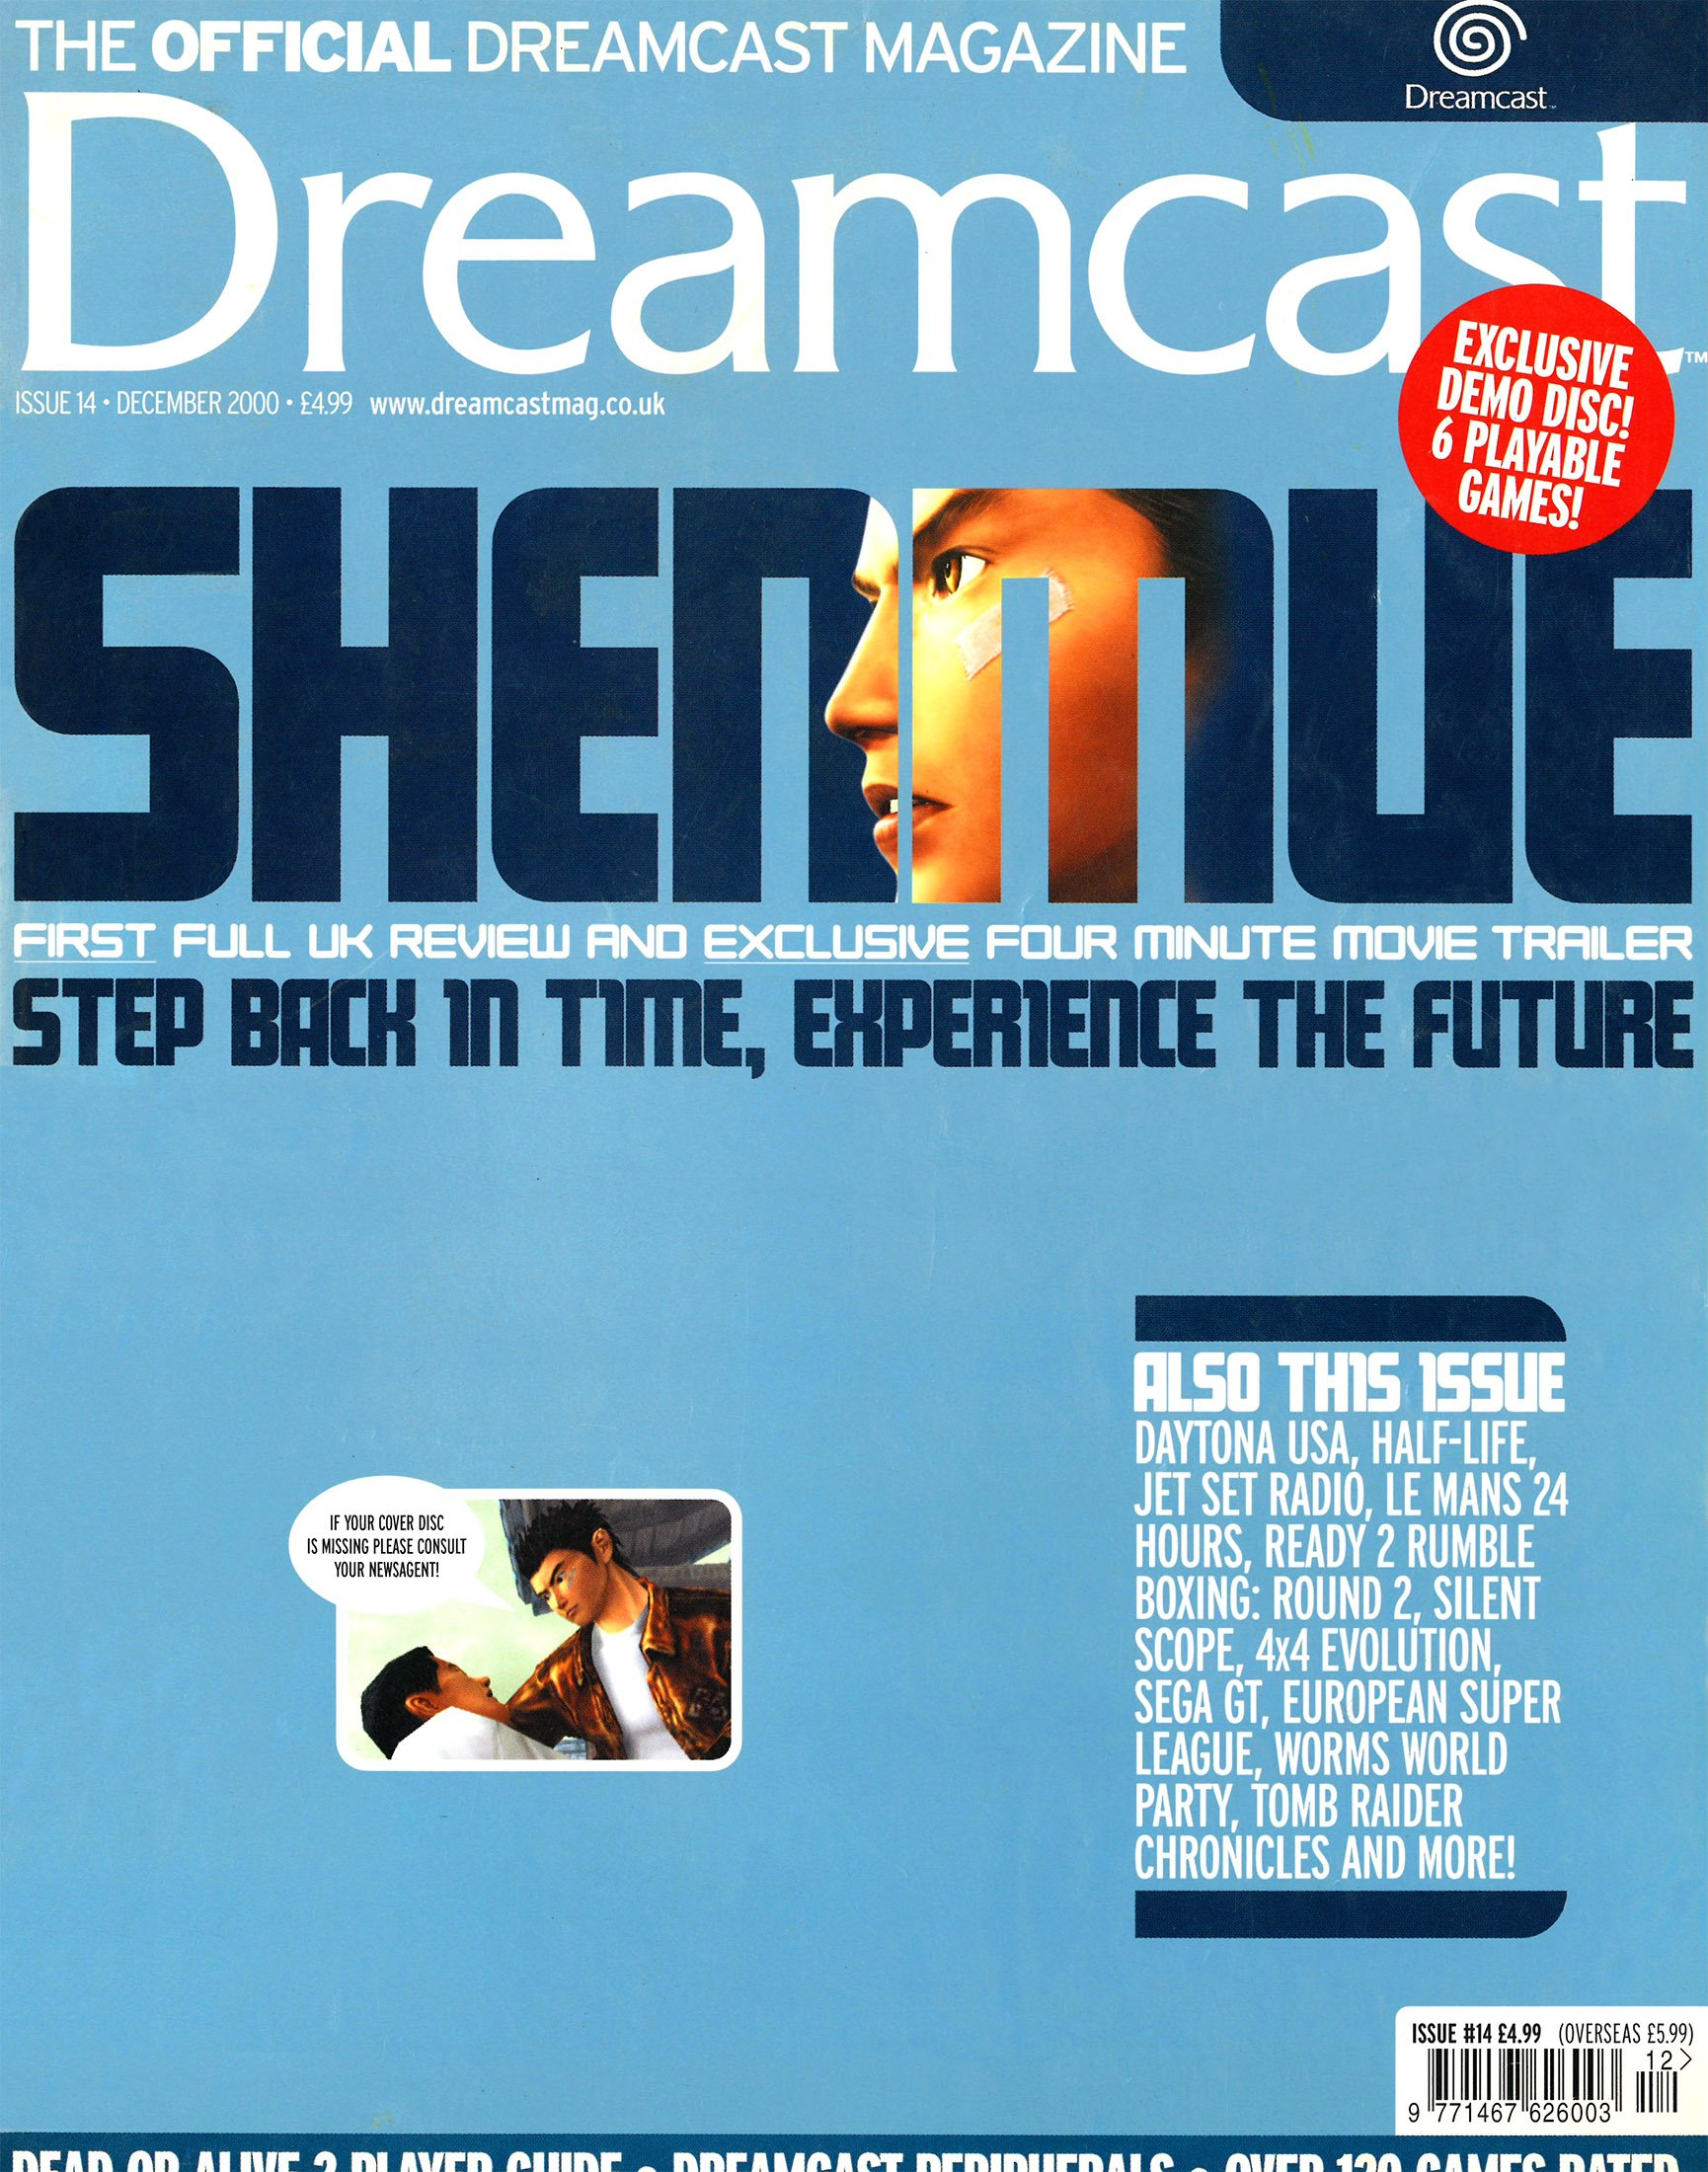 Official Dreamcast Magazine 14 (December 2000)